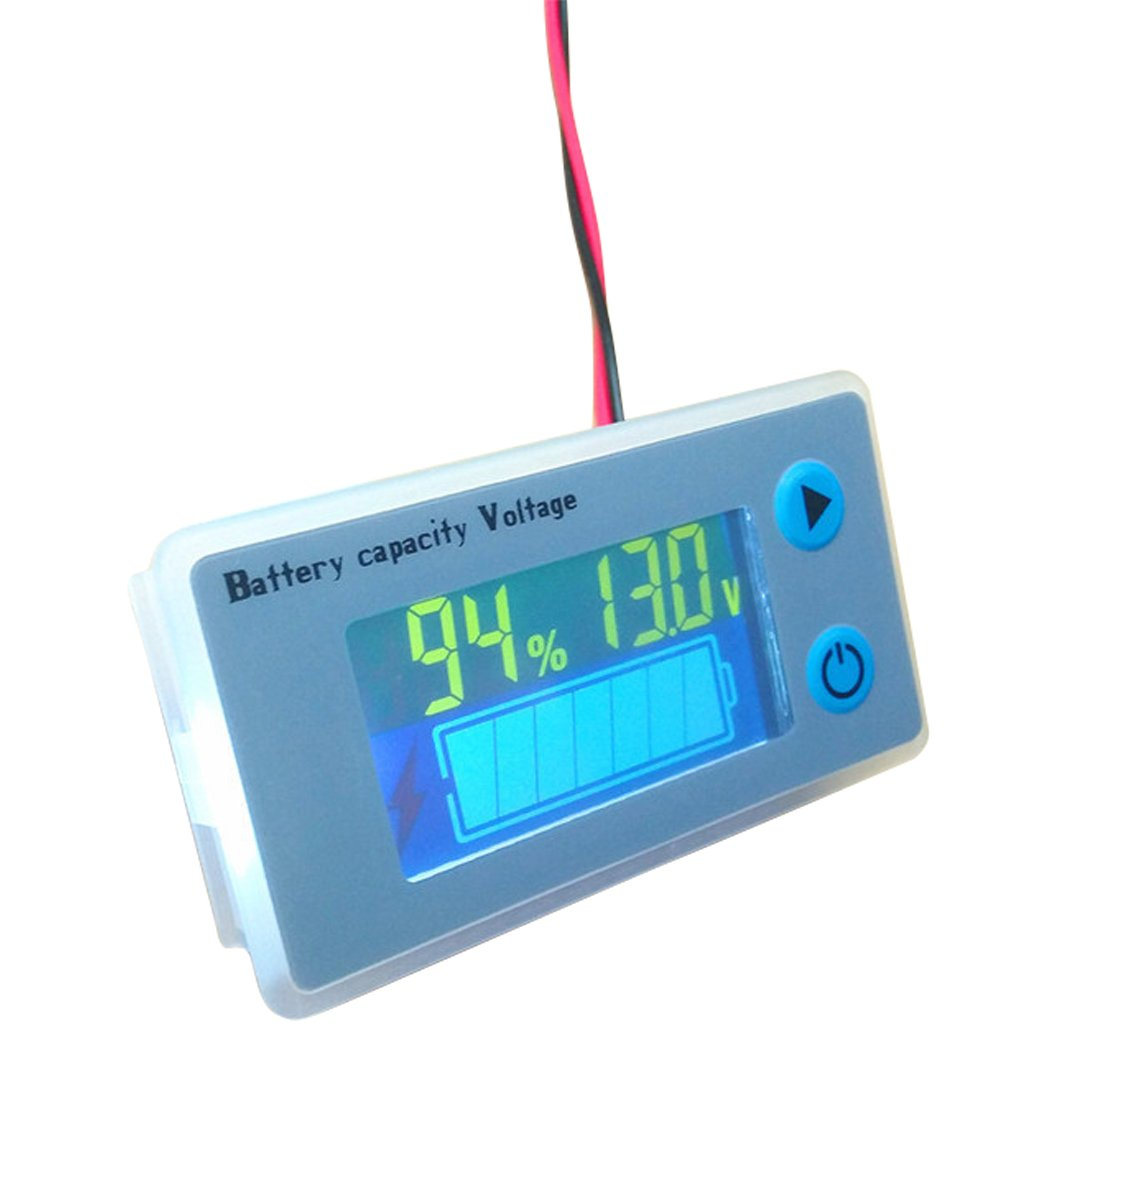 Multifunction 12V LCD Lead Acid Battery Capacity Meter Voltmeter with Temperature Display Battery Fuel Gauge Indicator Voltage Monitor cleanpower